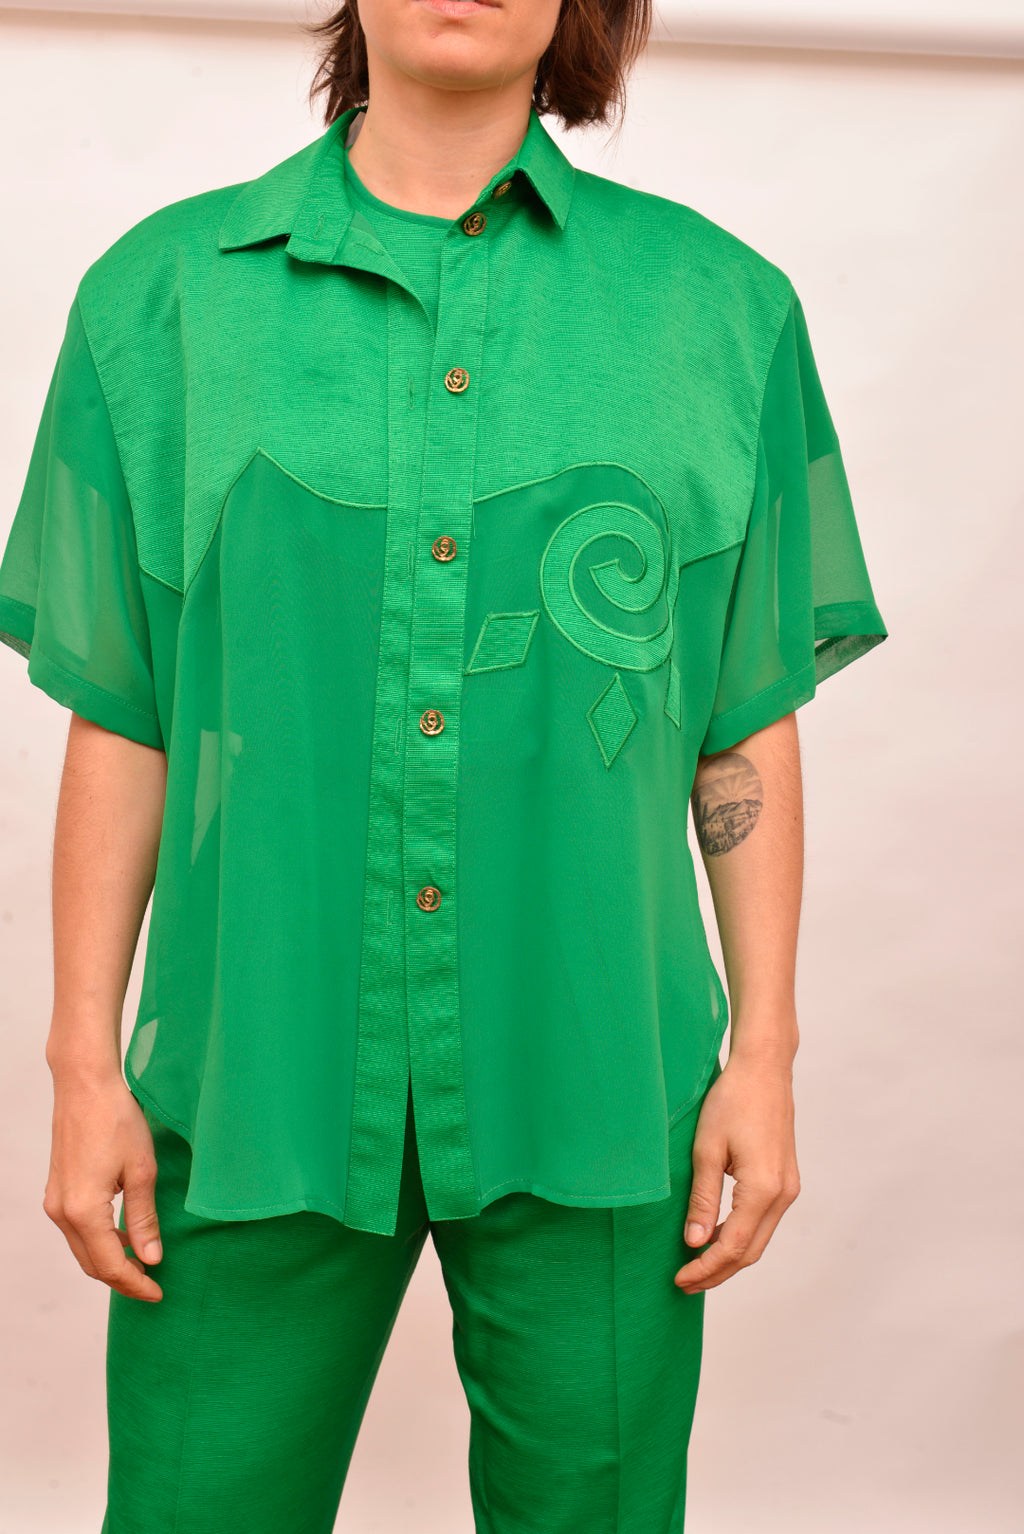 Vintage Green Patterned Shirt (M/L) - Mercado32